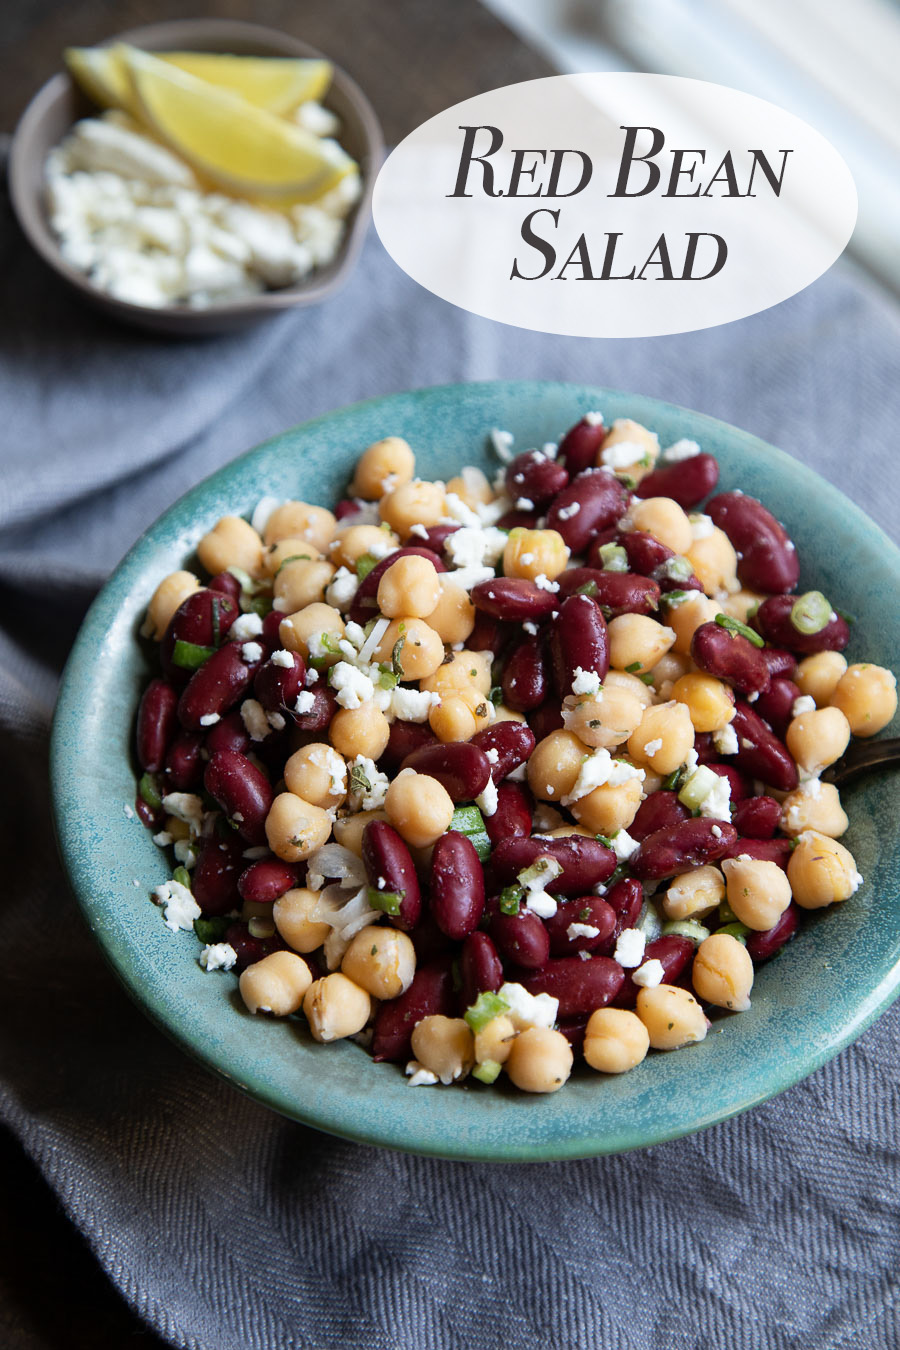 Delicious red bean salad with chickpeas, red beans, and feta cheese. A protein-packed salad that's simple, delicious, and healthy. #lmrecipes #salad #vegetarian